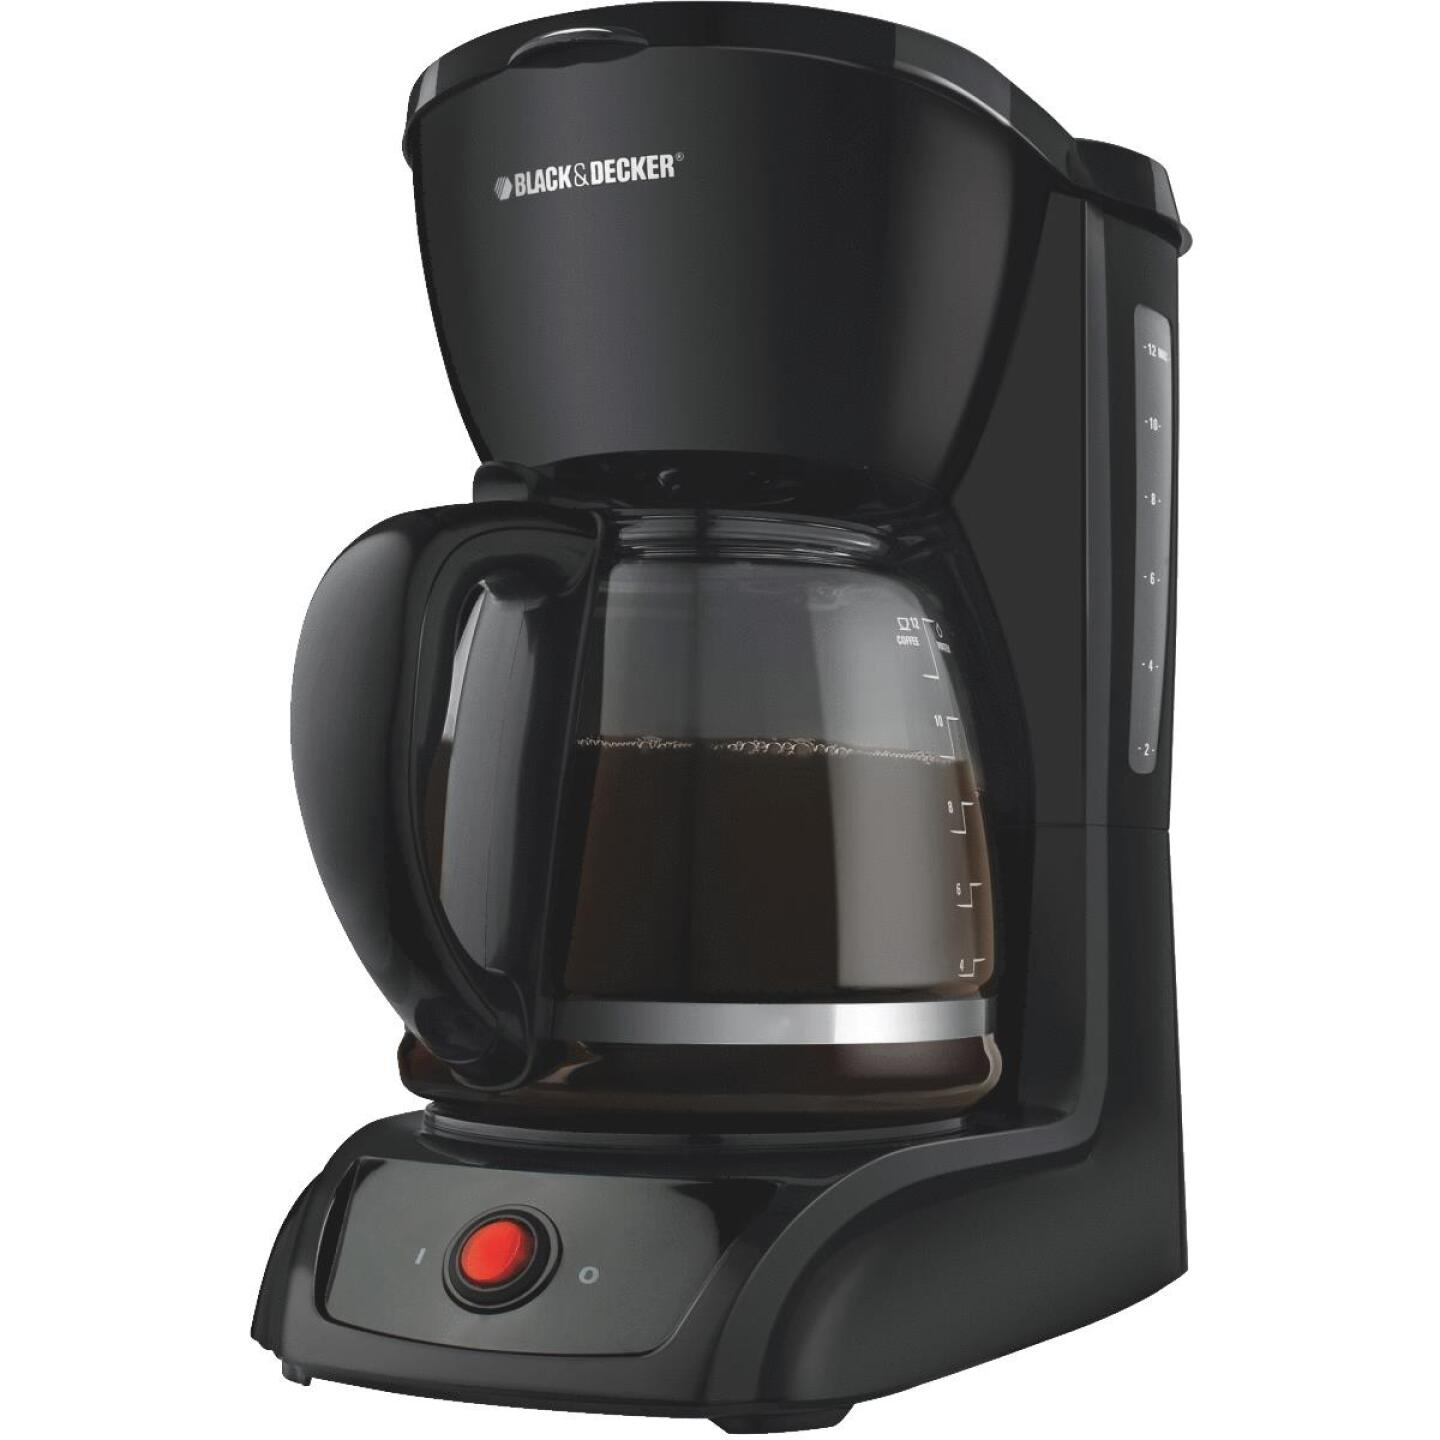 Black & Decker 12 Cup Black Coffee Maker Image 1